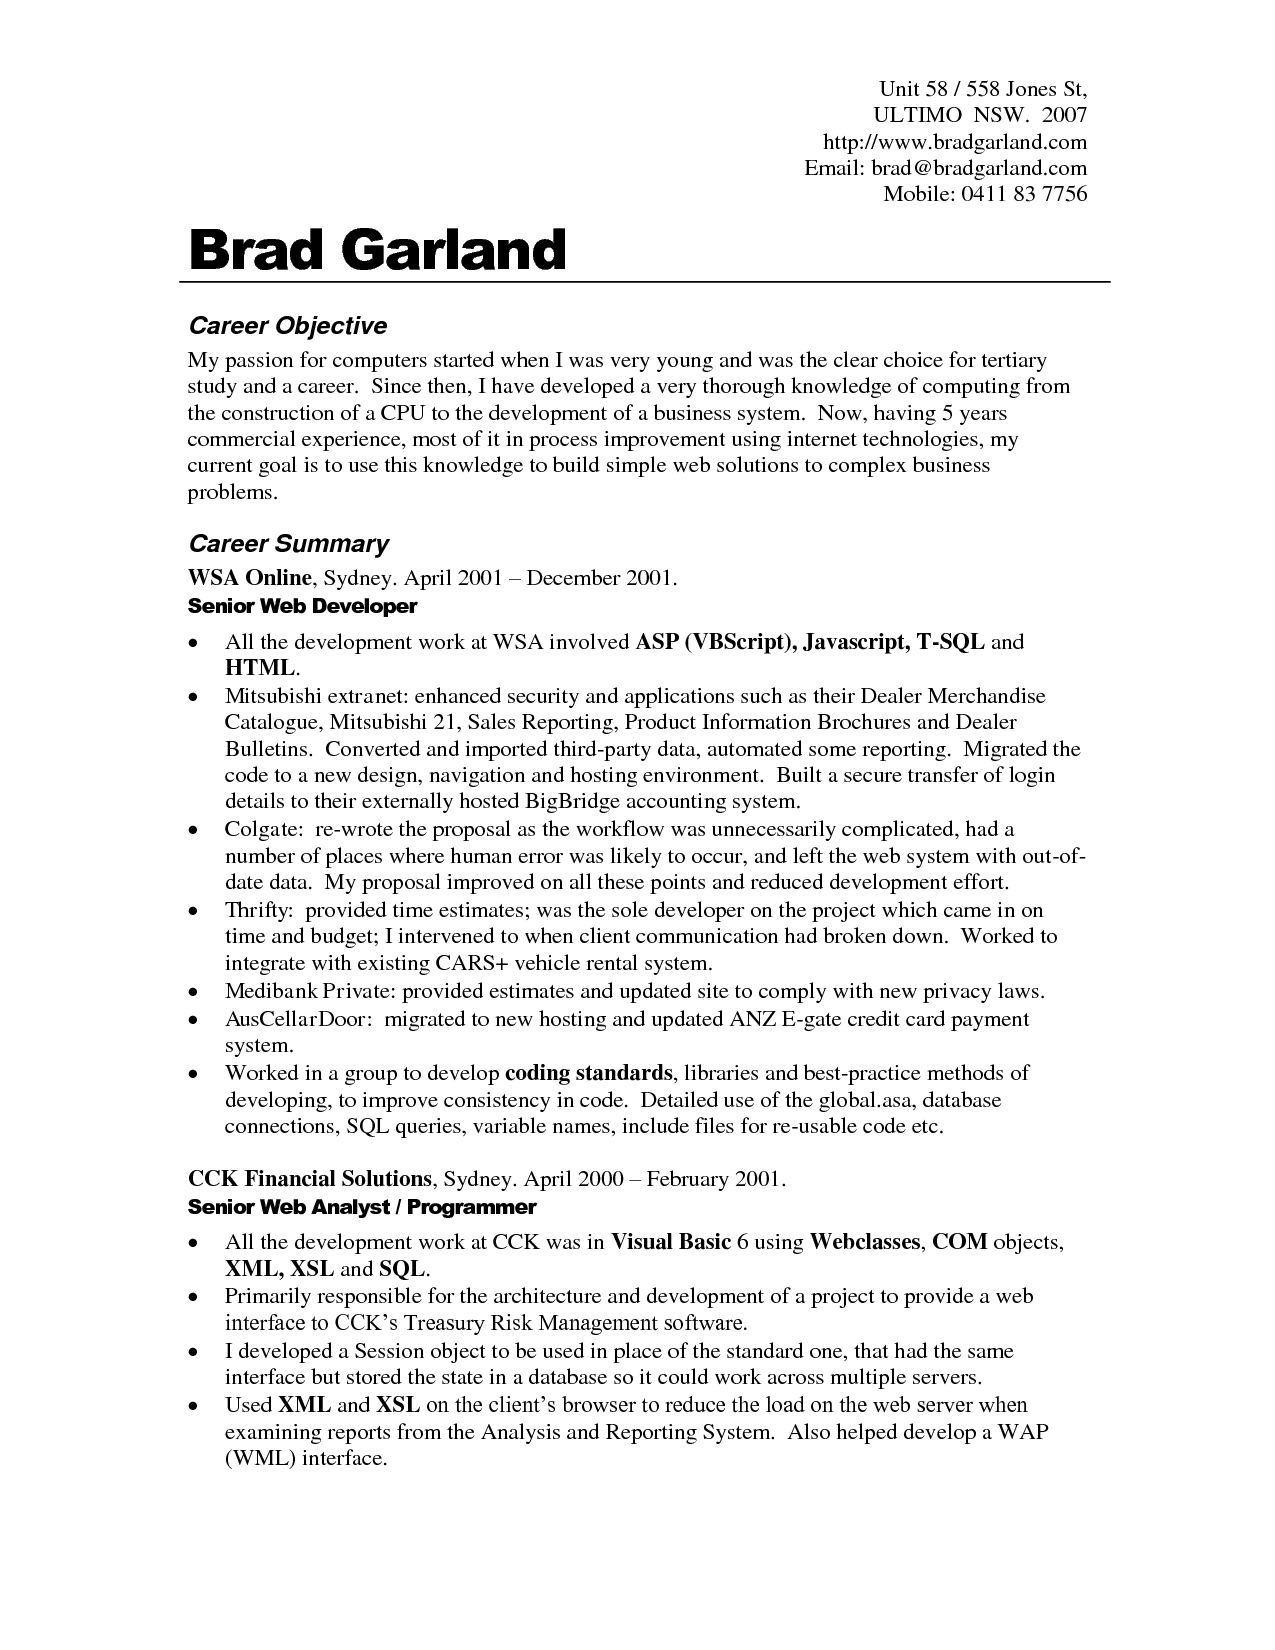 It Sample Resume Sample Resume Action Verbs For Lawyers Formatting Back Post